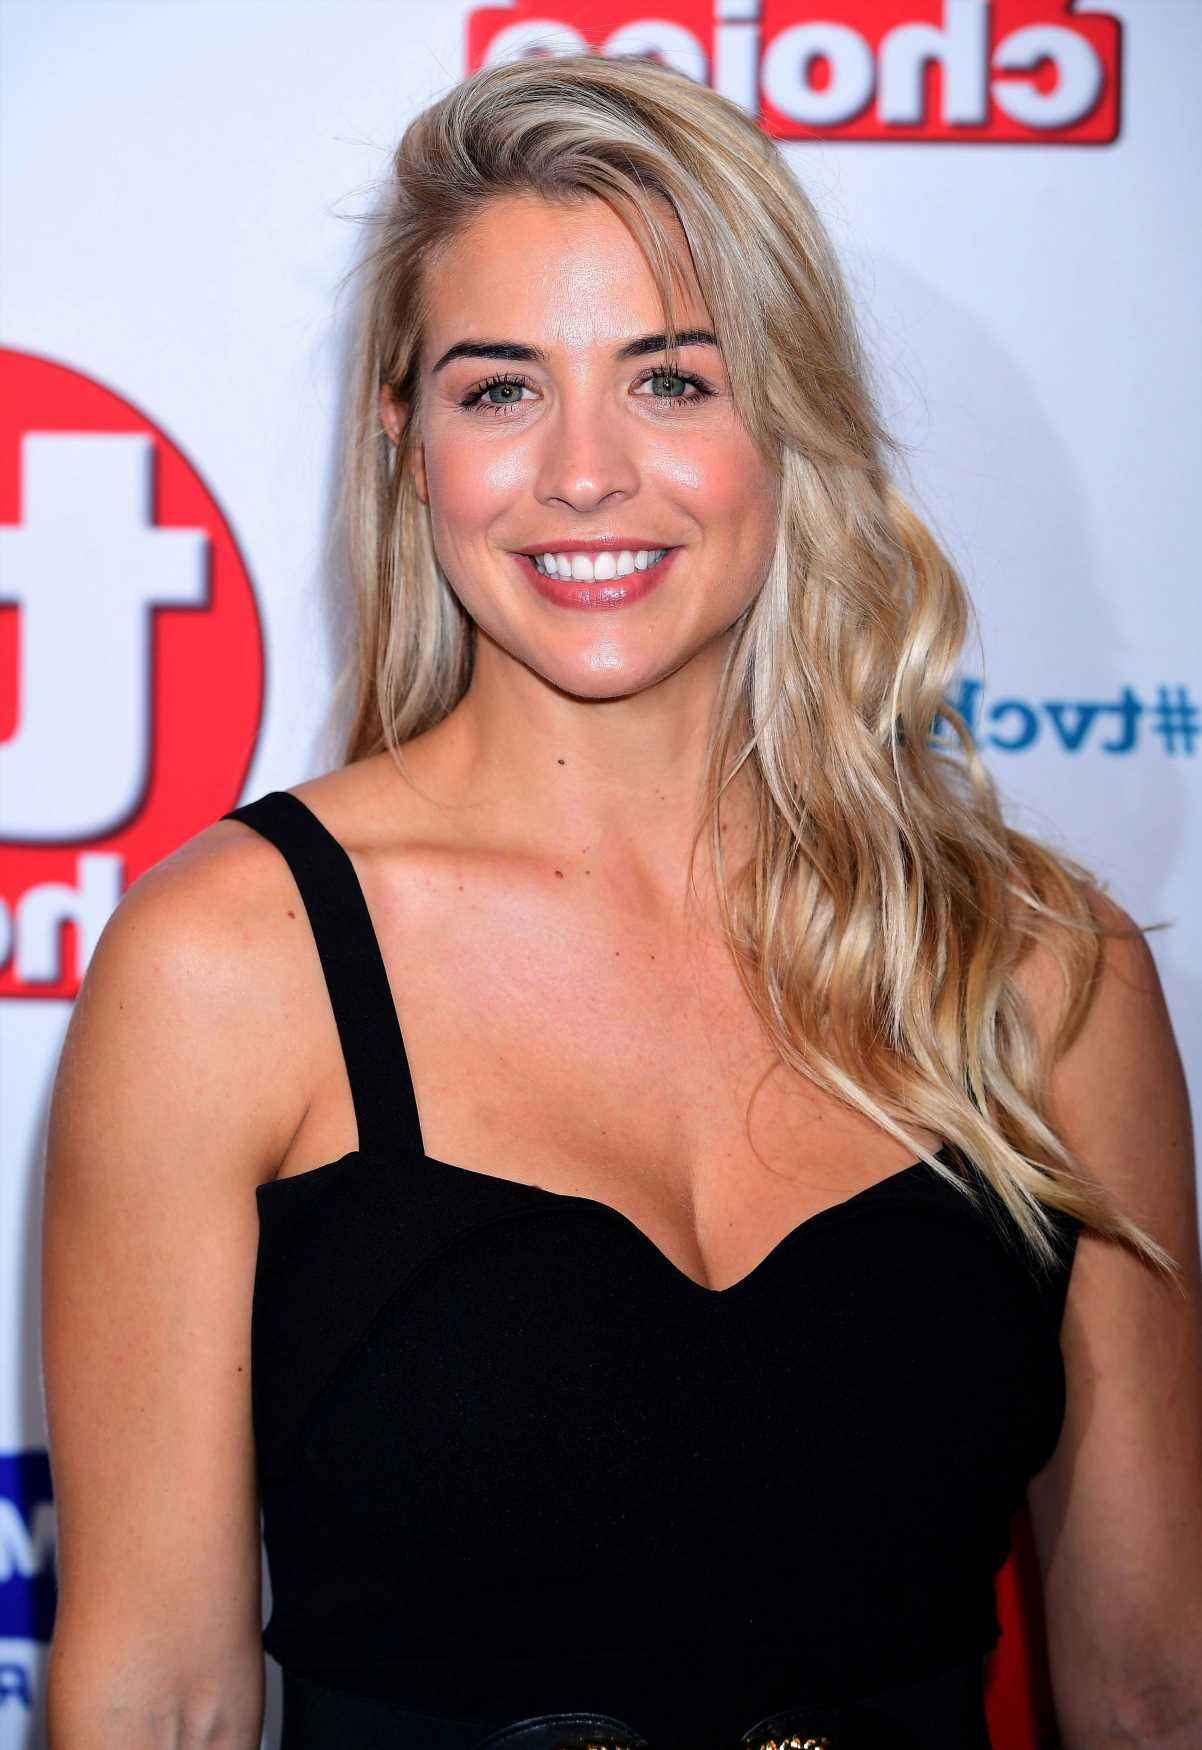 Who is Gemma Atkinson, when did she start dating Strictly's Gorka Marquez and what did she say about Shamima Begum?